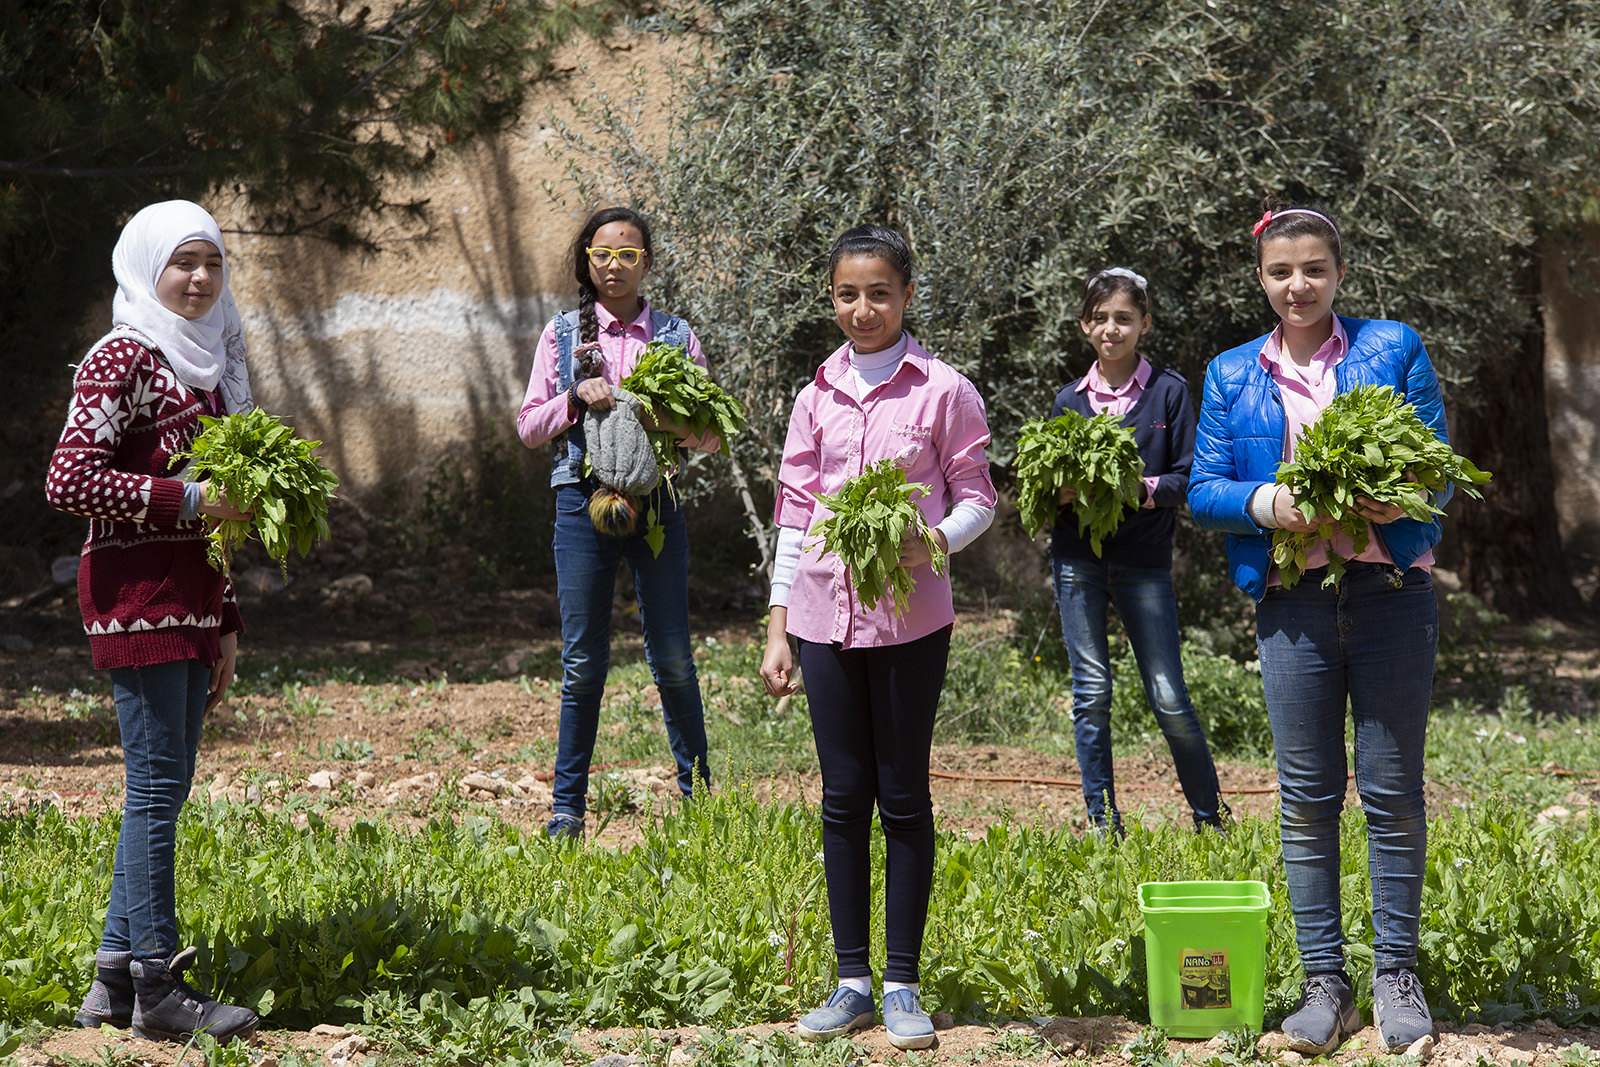 Students celebrate the taste of green leaves in the Syrian Arab Republic